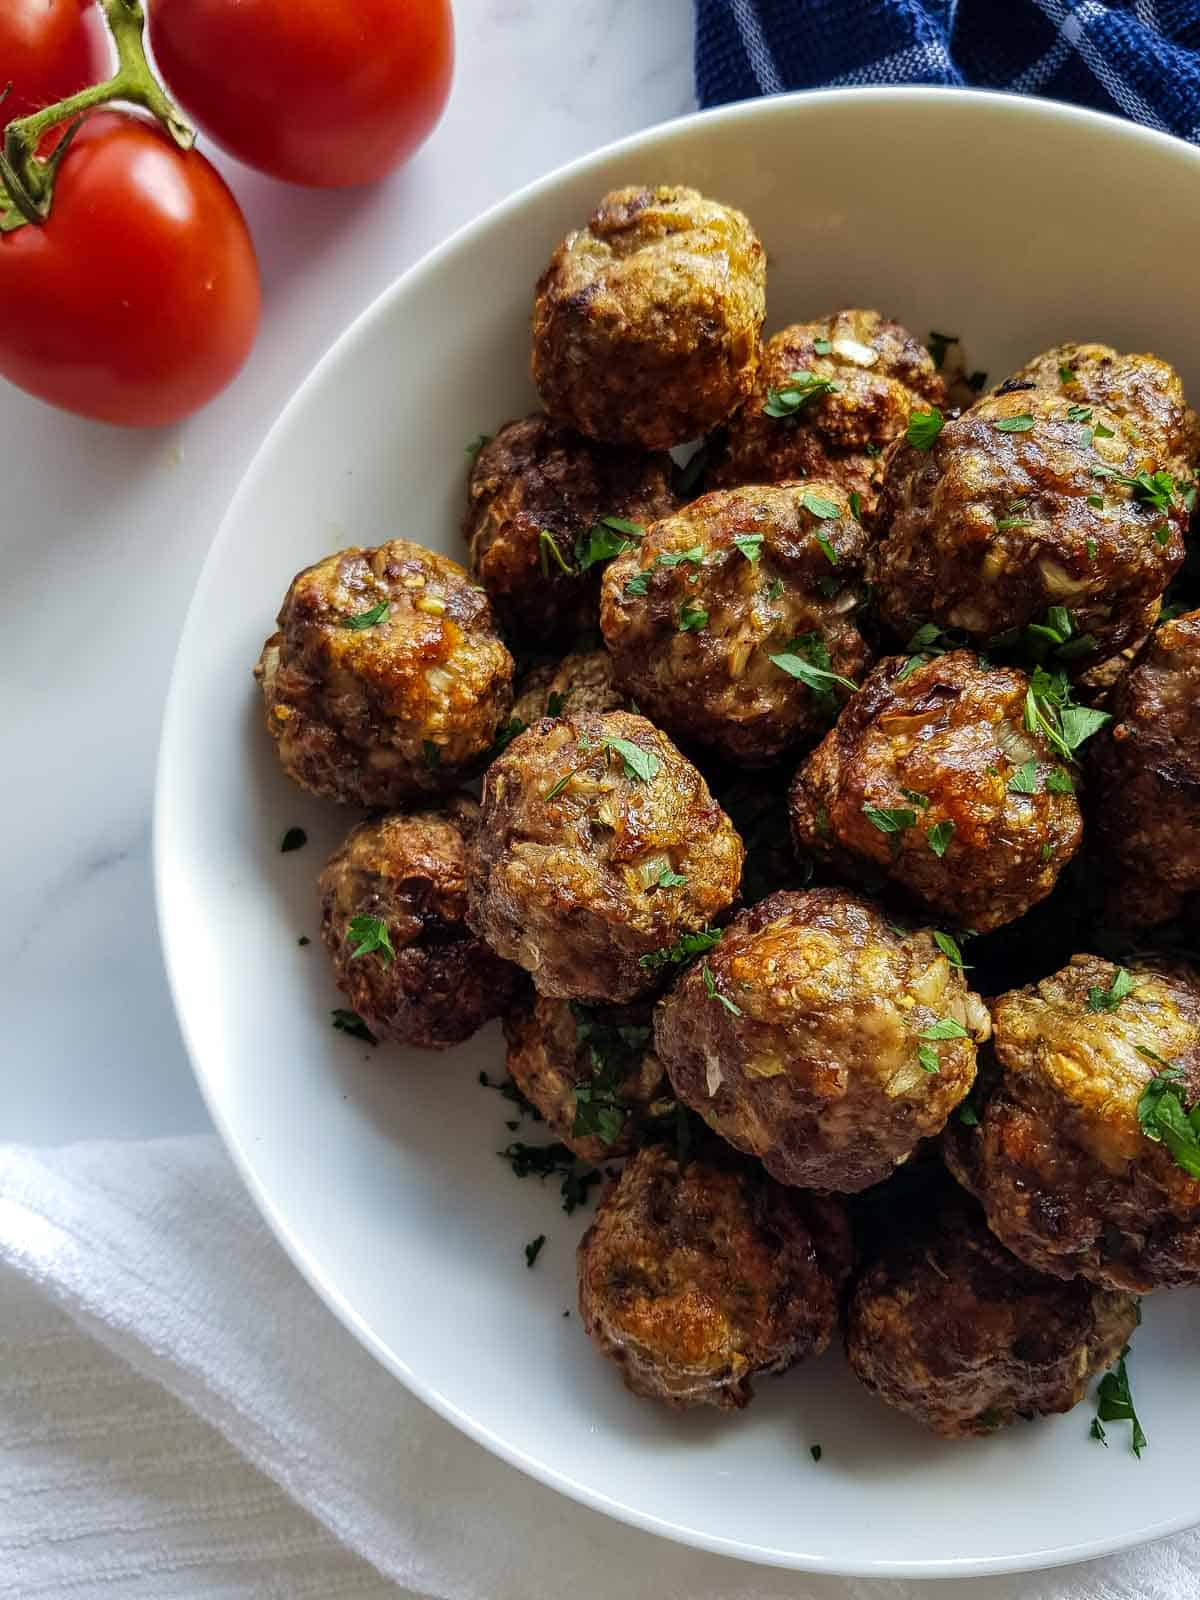 Meatballs with parsley on top.